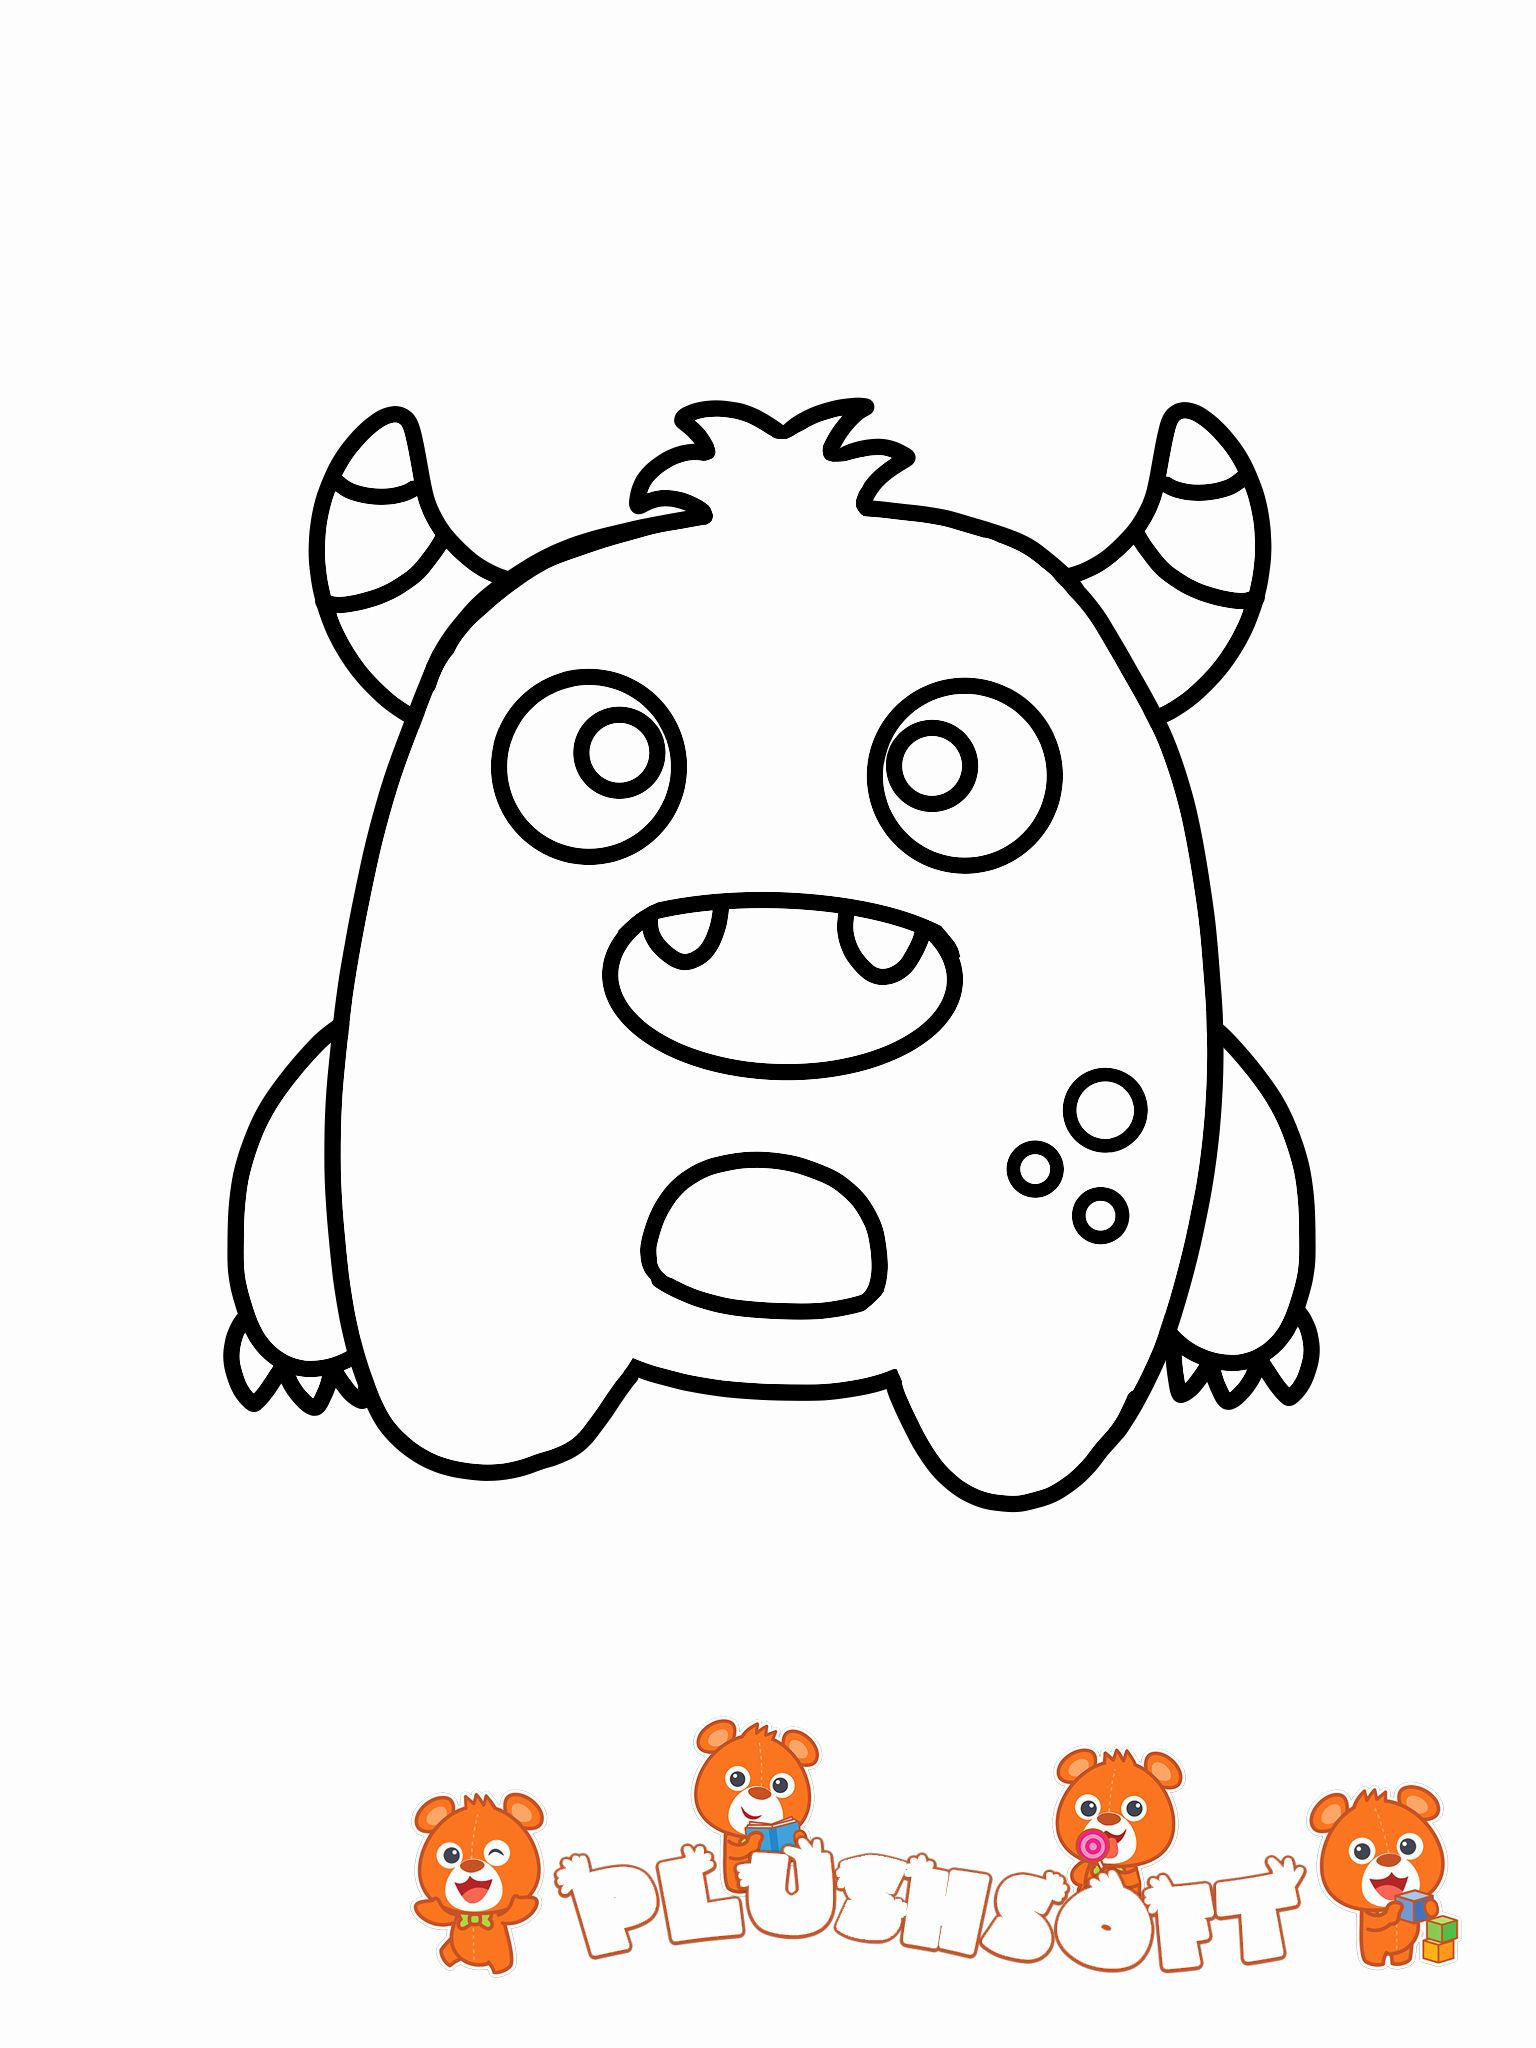 Cartoon Coloring Pages Pdf Elegant Monster Coloring Pages For Preschoolers